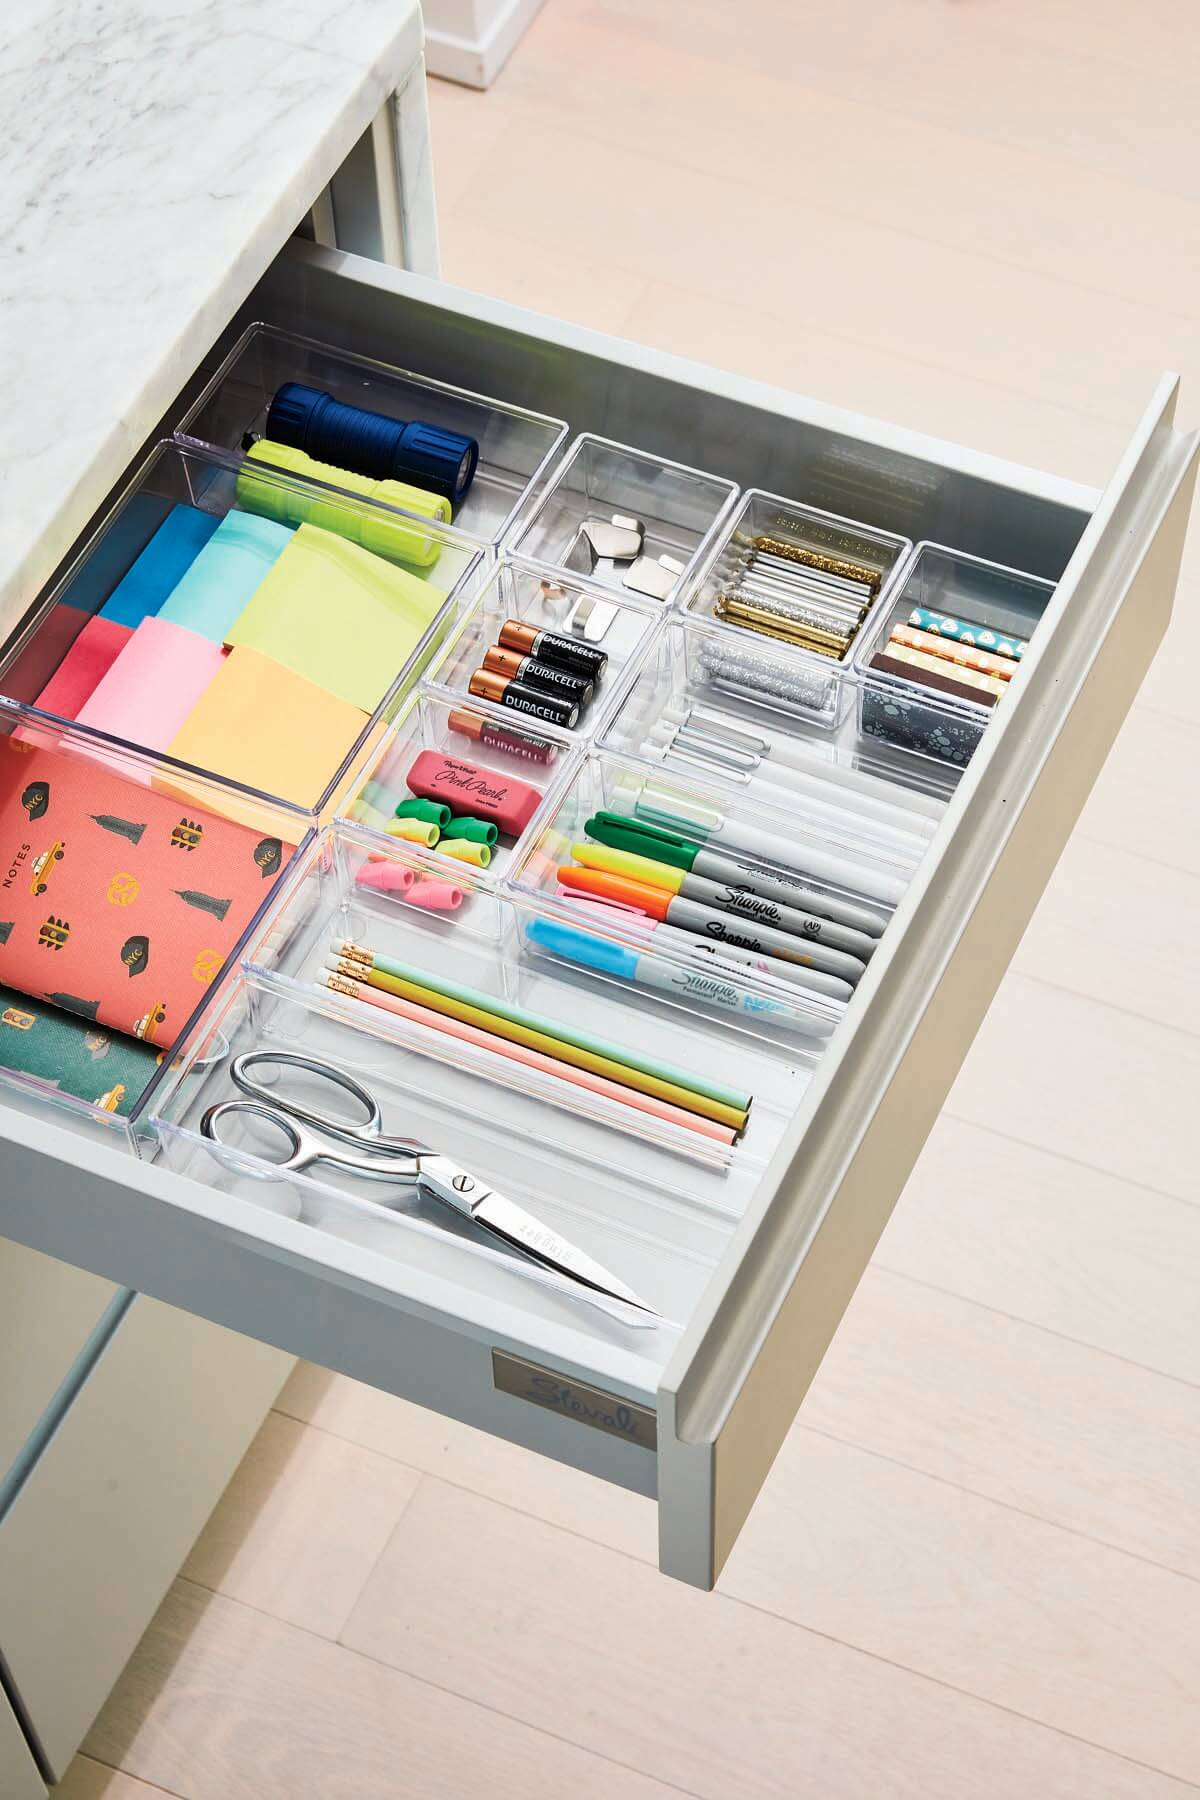 Kitchen junk drawer for spring cleaning tips